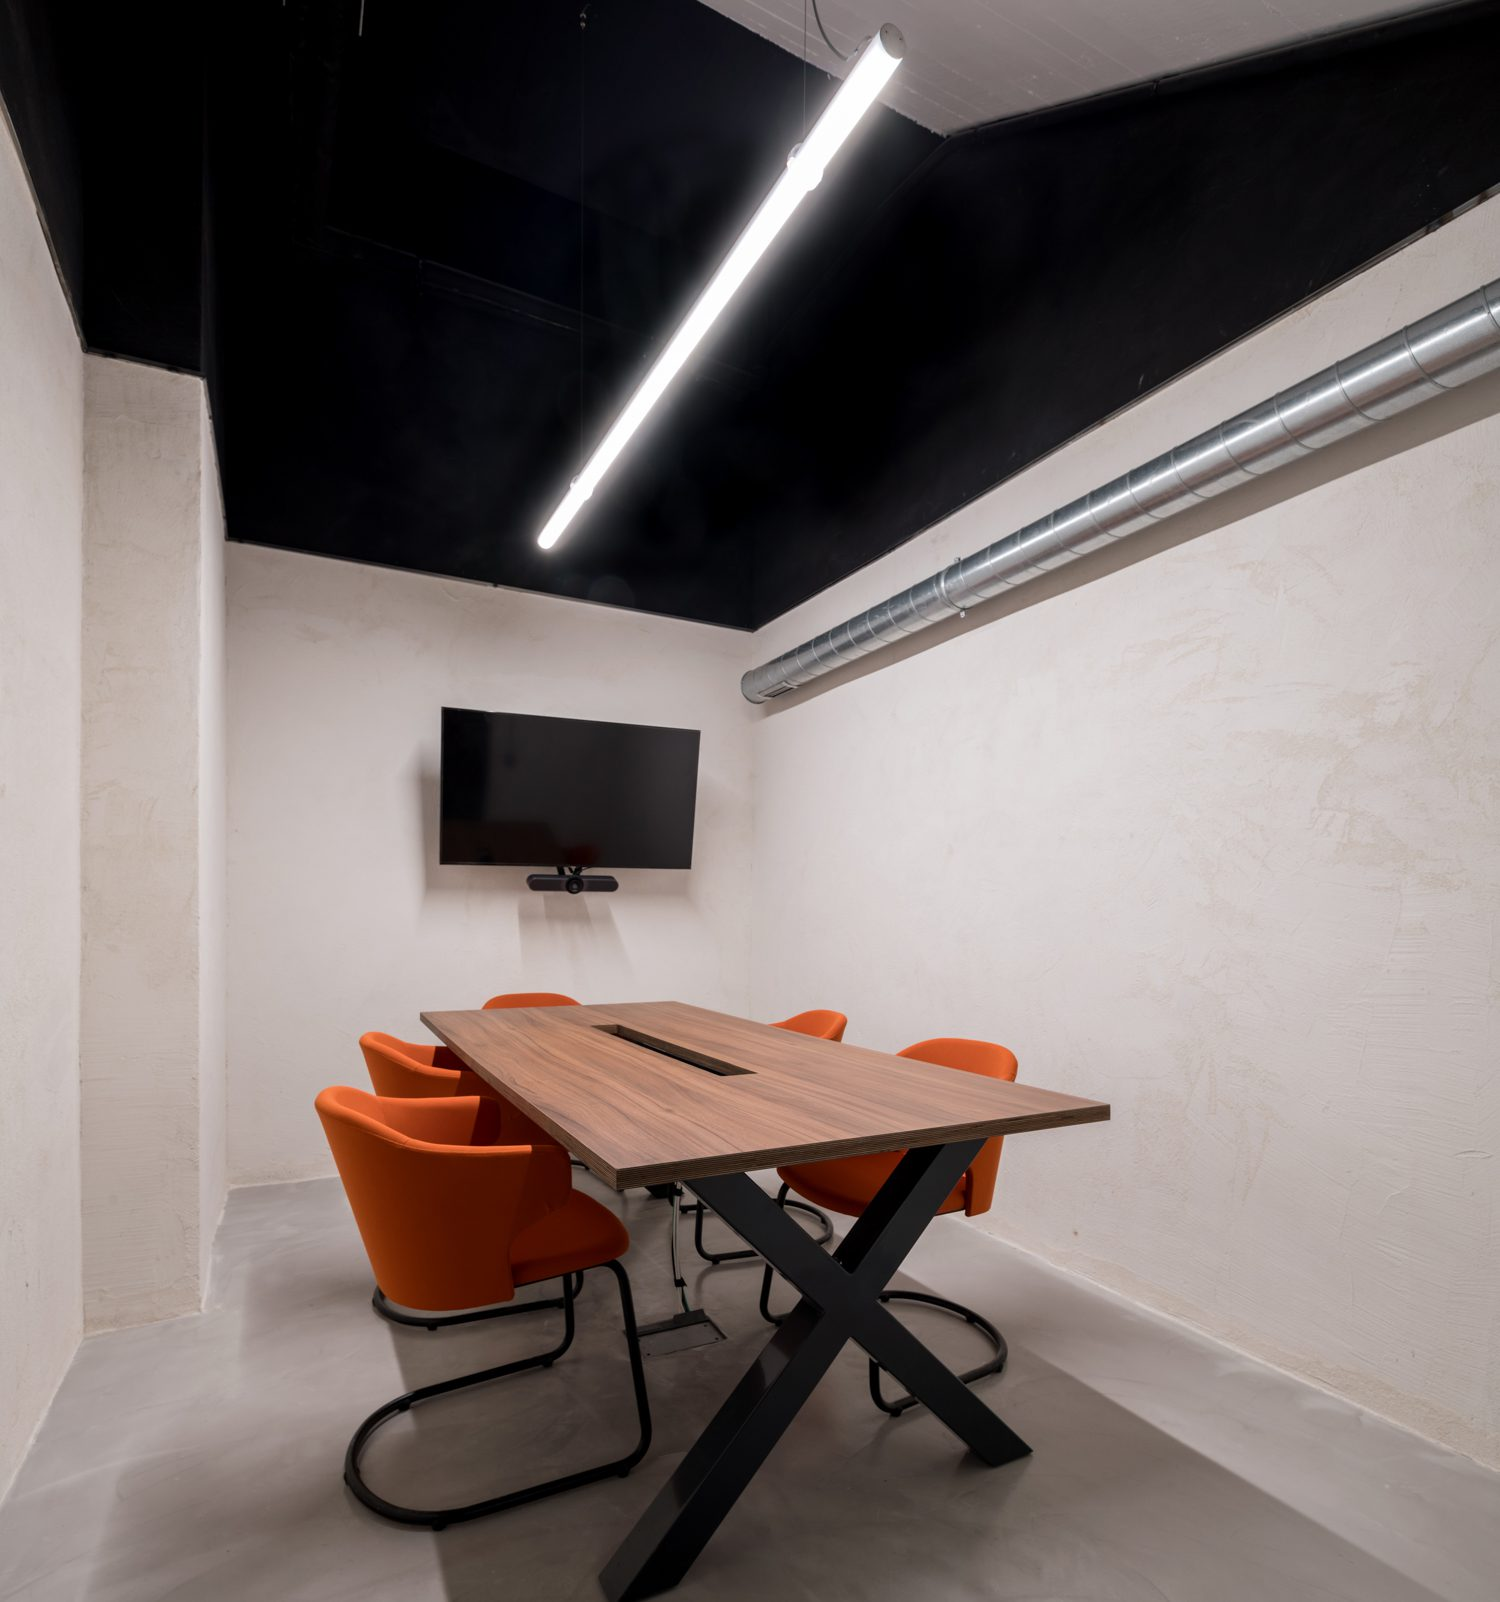 In a conference room, the simplicity of linear light fixtures and cross-beam tables keep the focus on the meeting.